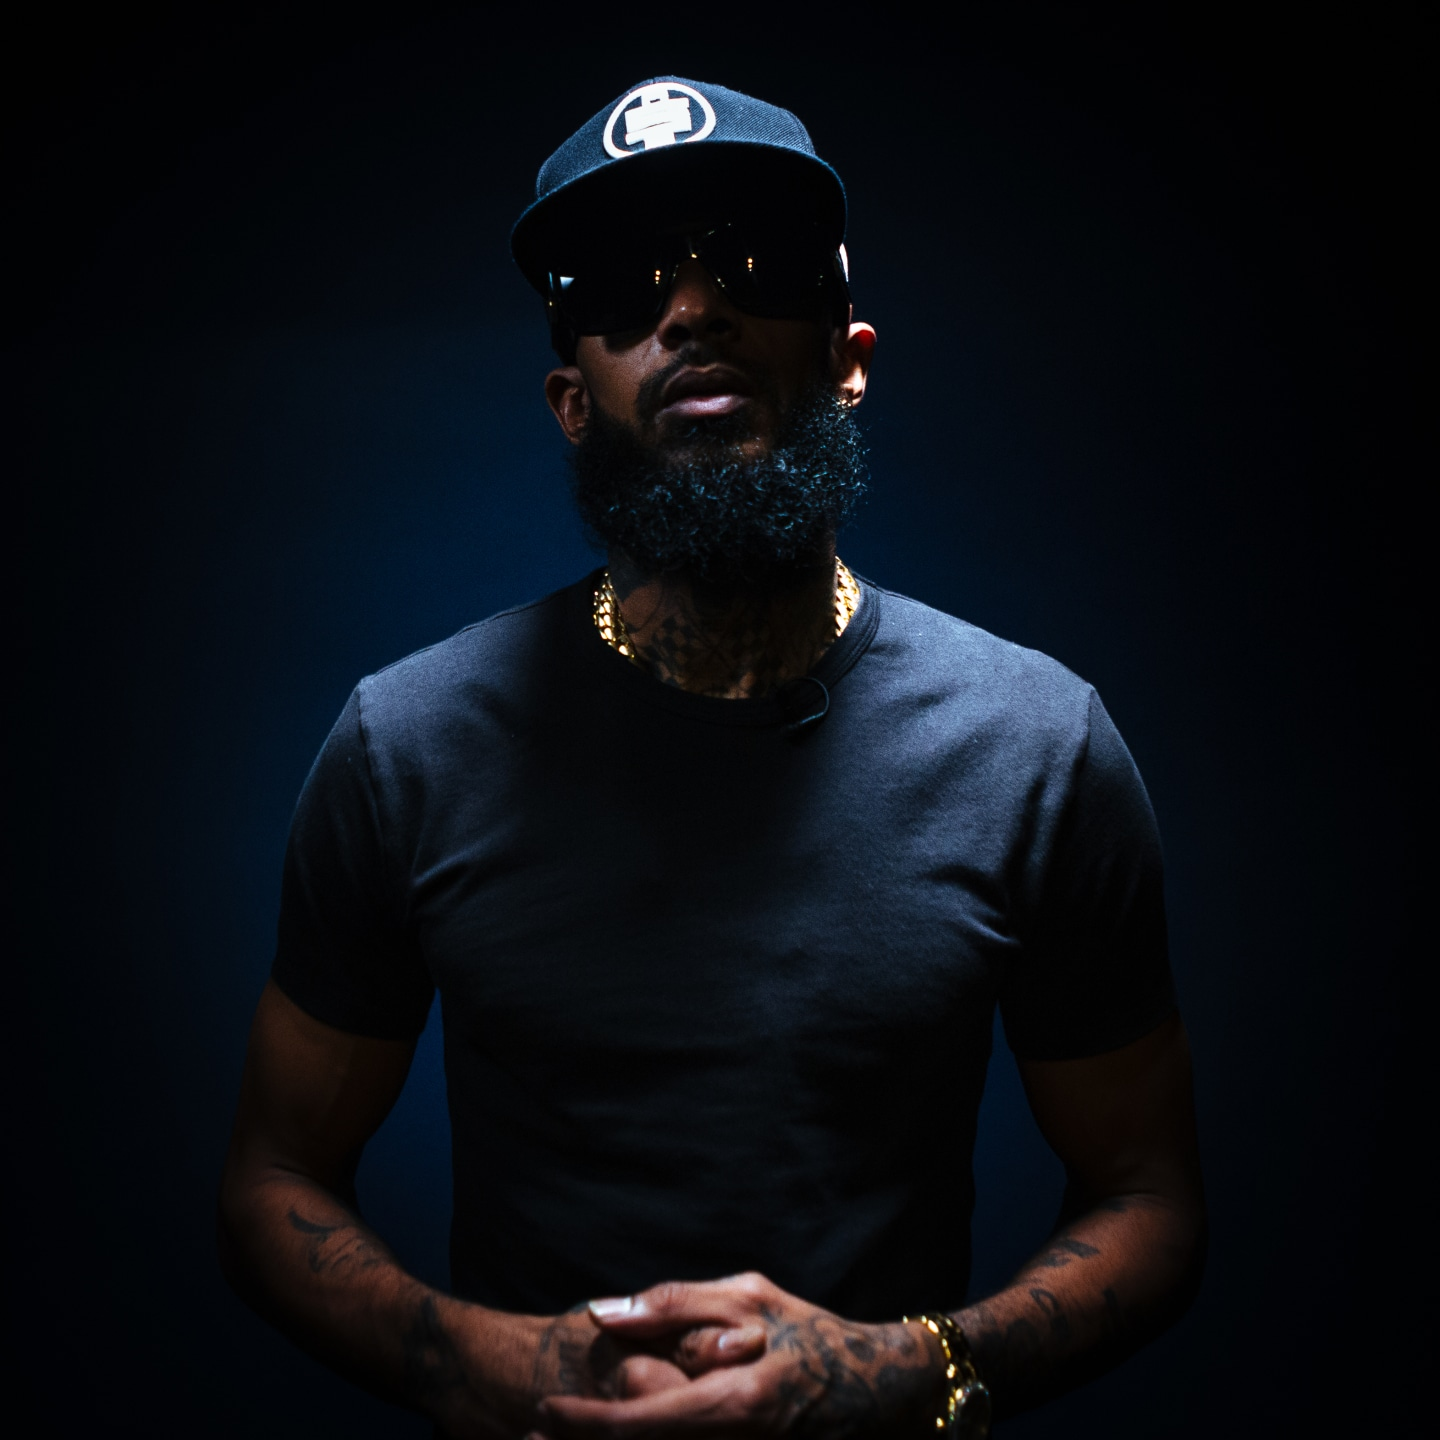 Nipsey Hussle is making major label moves with an